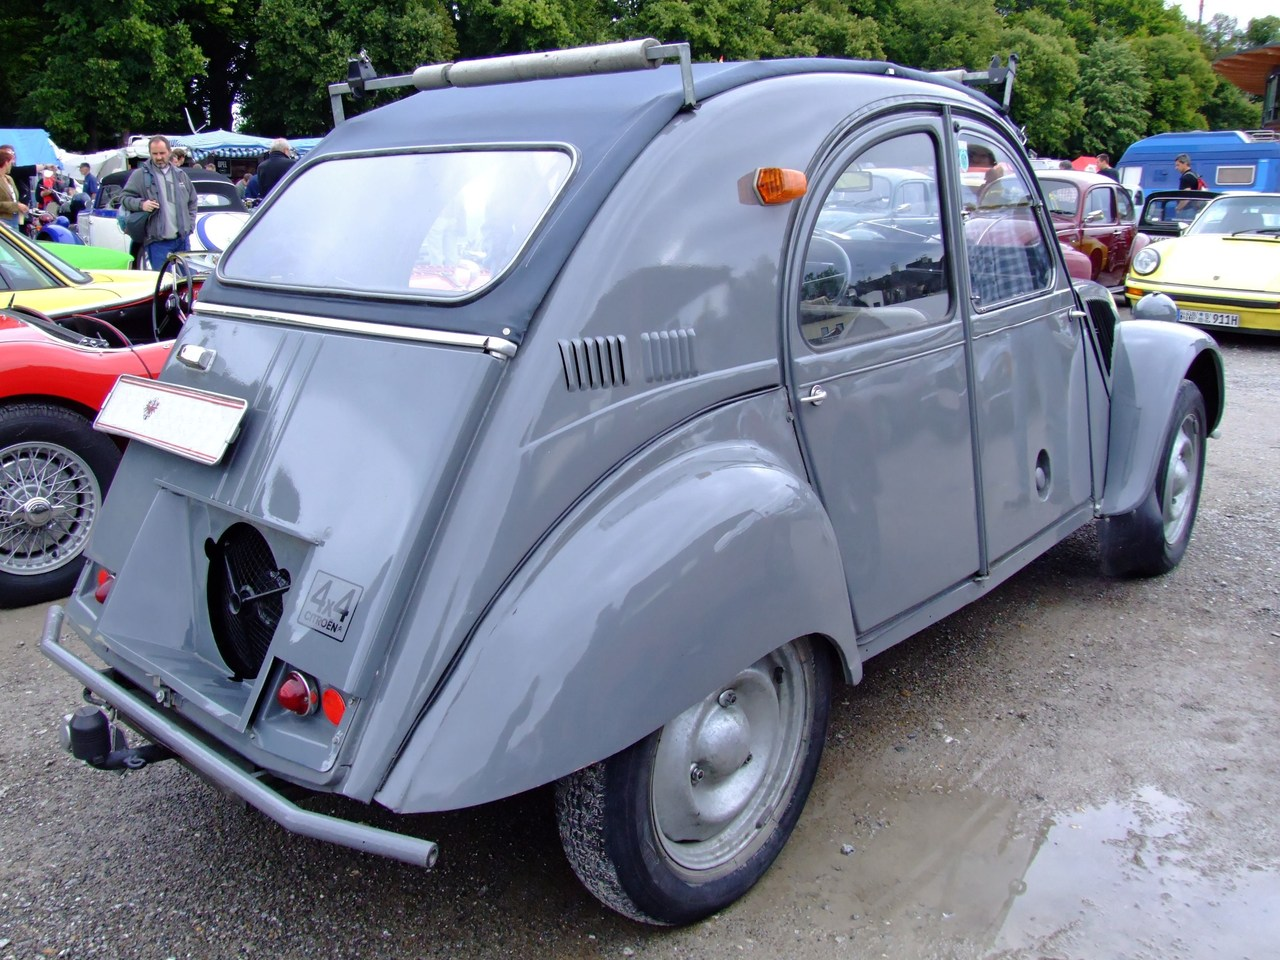 Citroën 2CV - Tractor & Construction Plant Wiki - The classic vehicle and